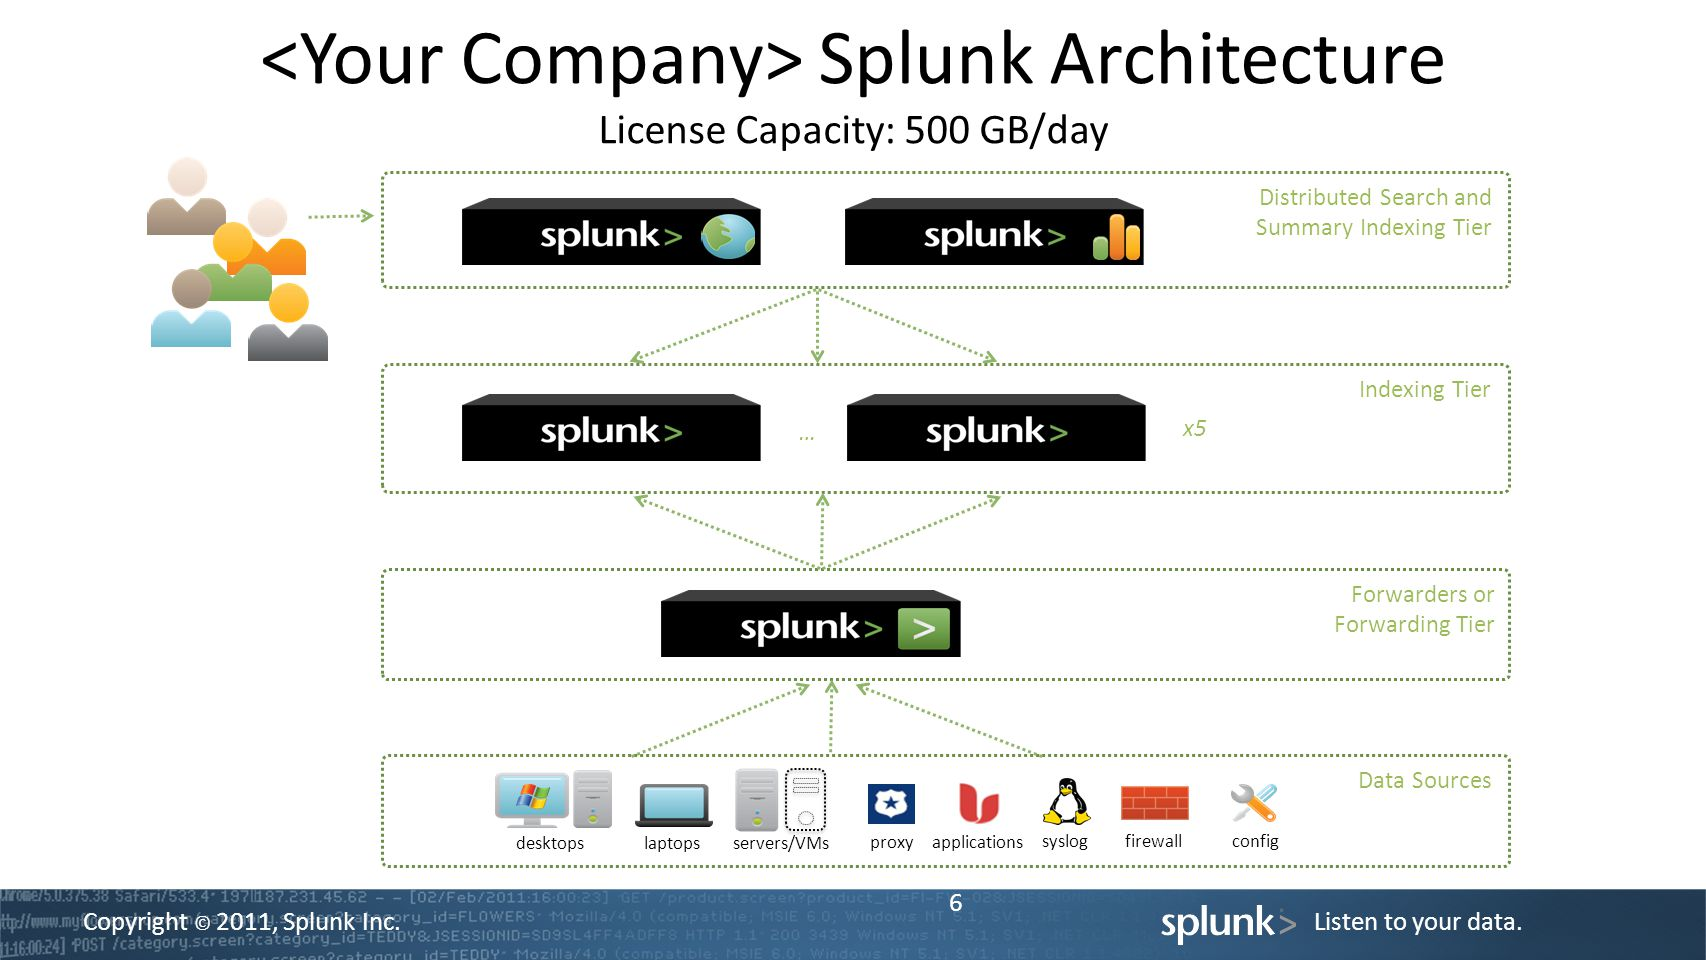 <Your Company> Splunk Architecture License Capacity: 500 GB/day